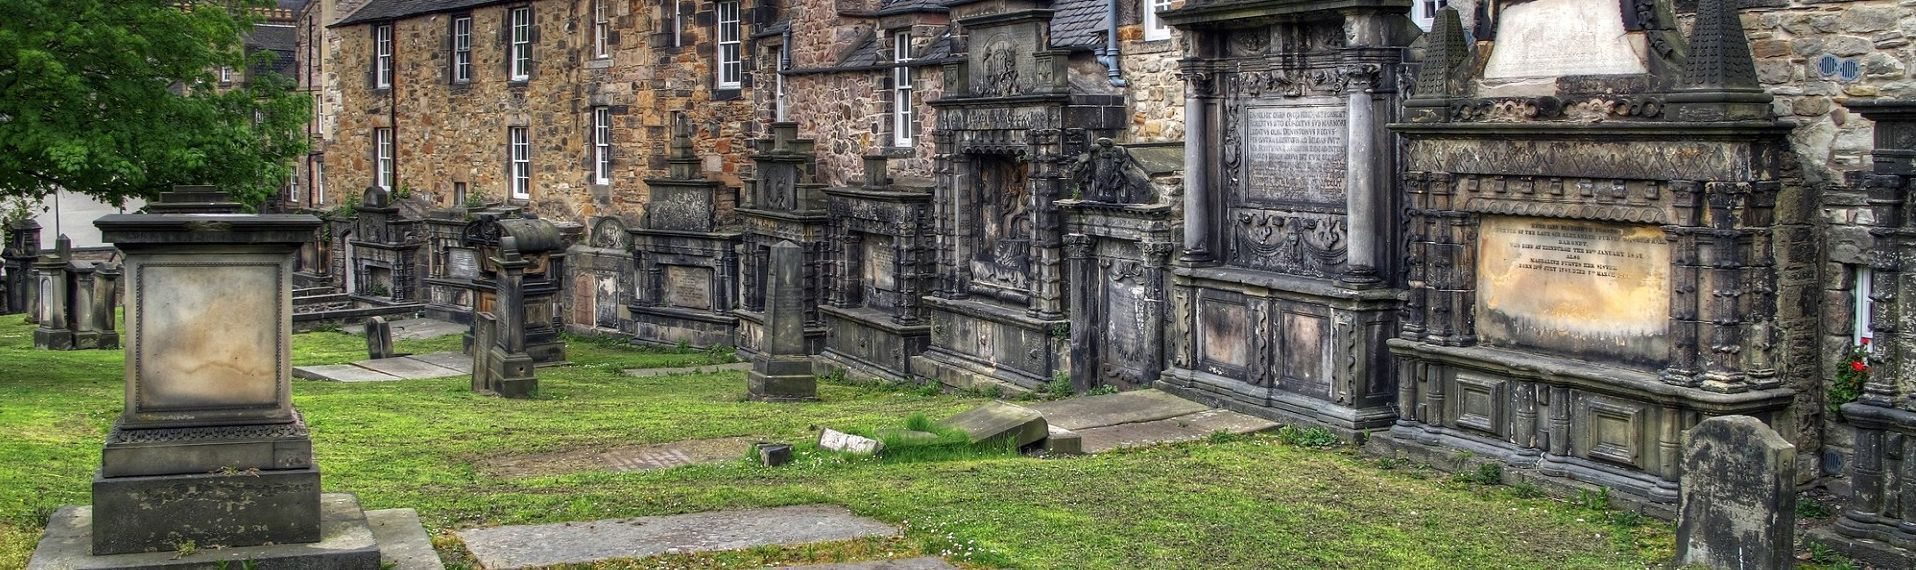 00-Greyfriars-Kirkyard---Haunted-Tomb-of-a-Torturer.jpg